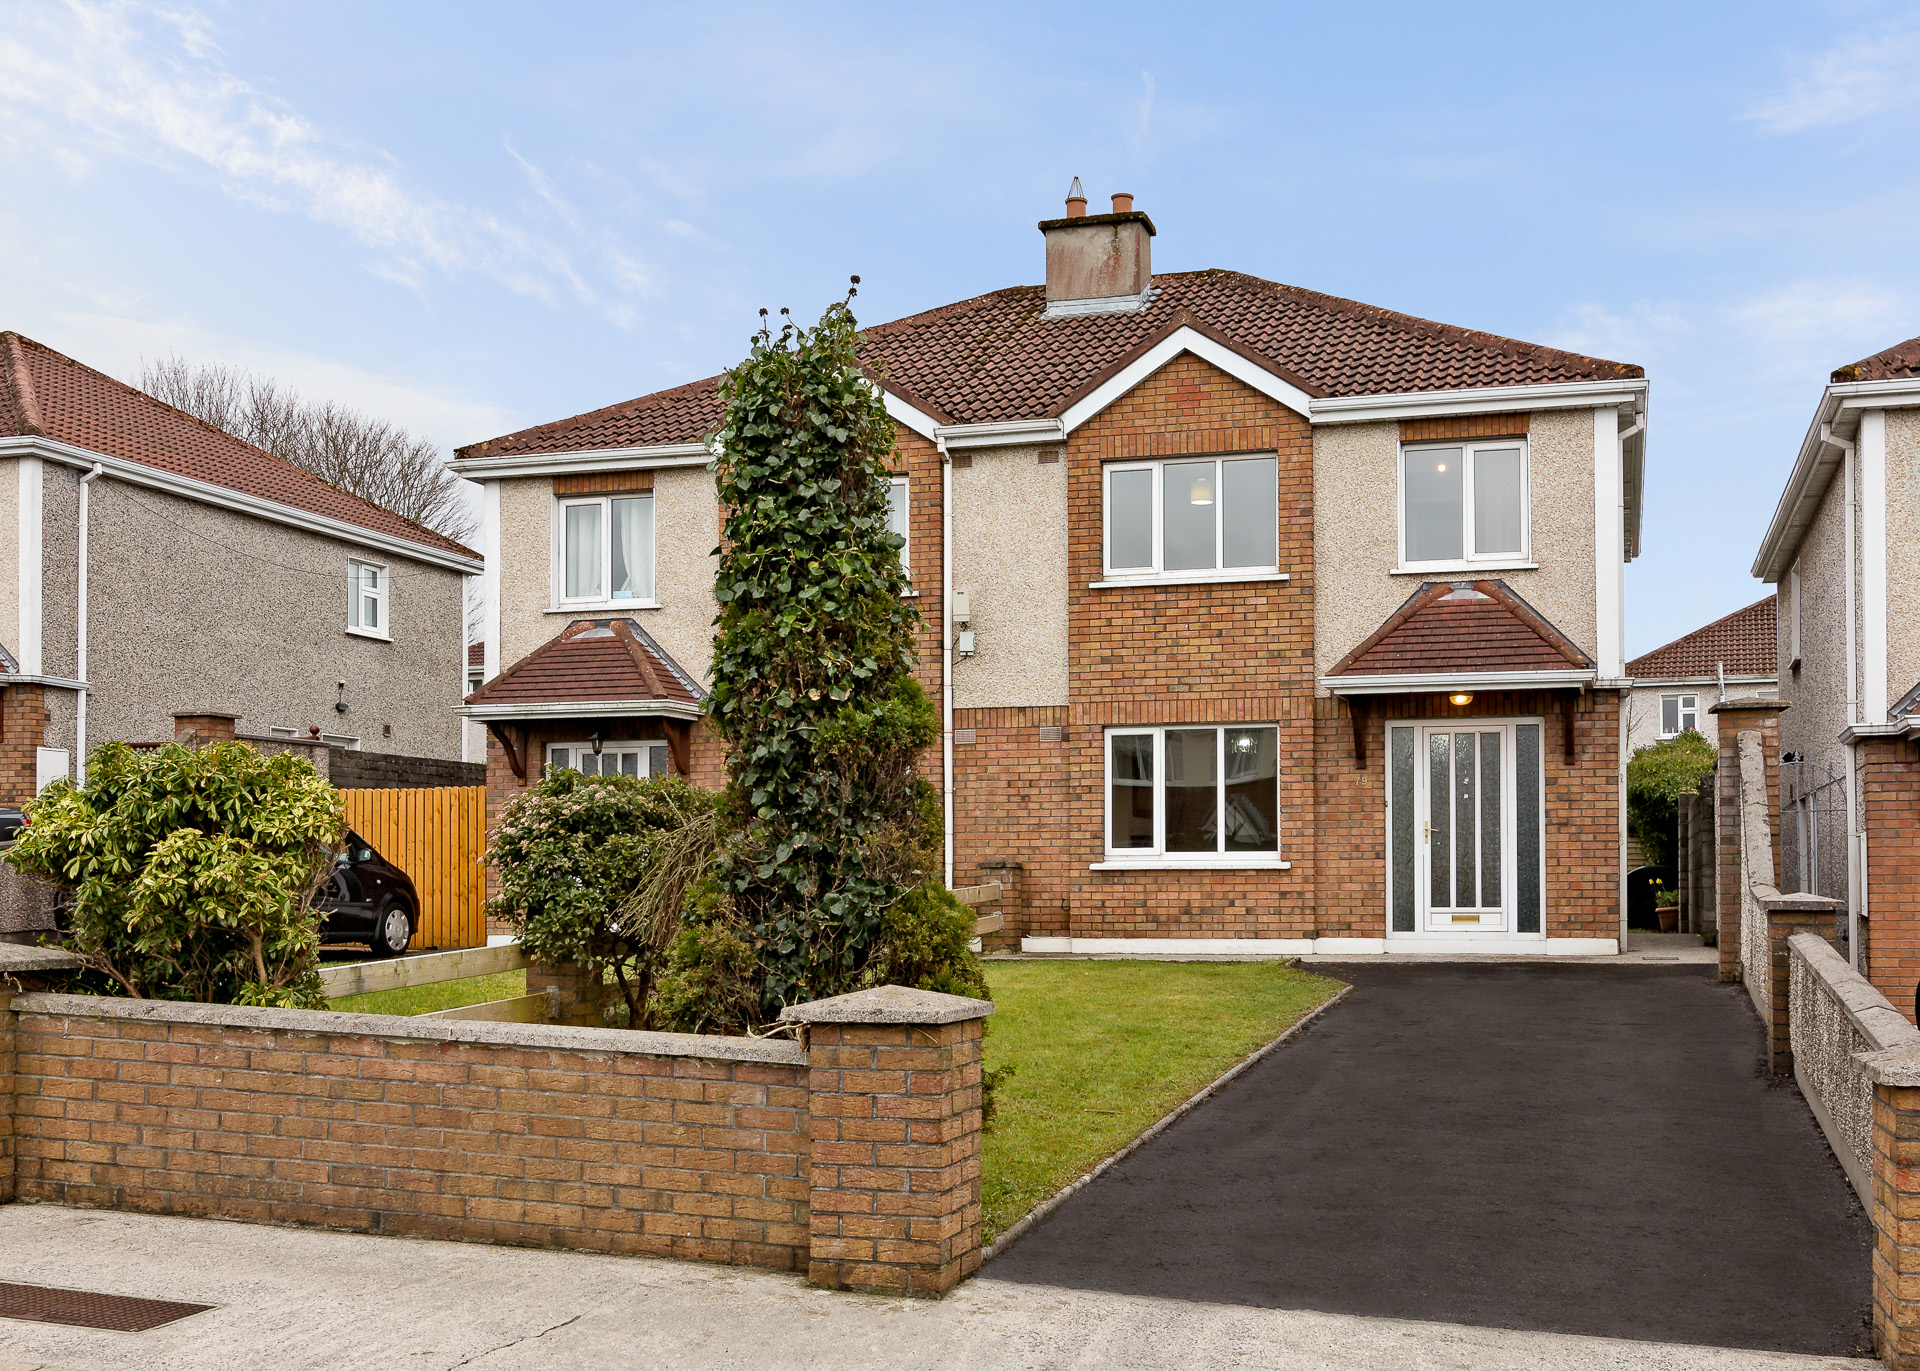 79 Knocknaganny Park, Sligo, Co. Sligo, F91 Y7T1, Ireland